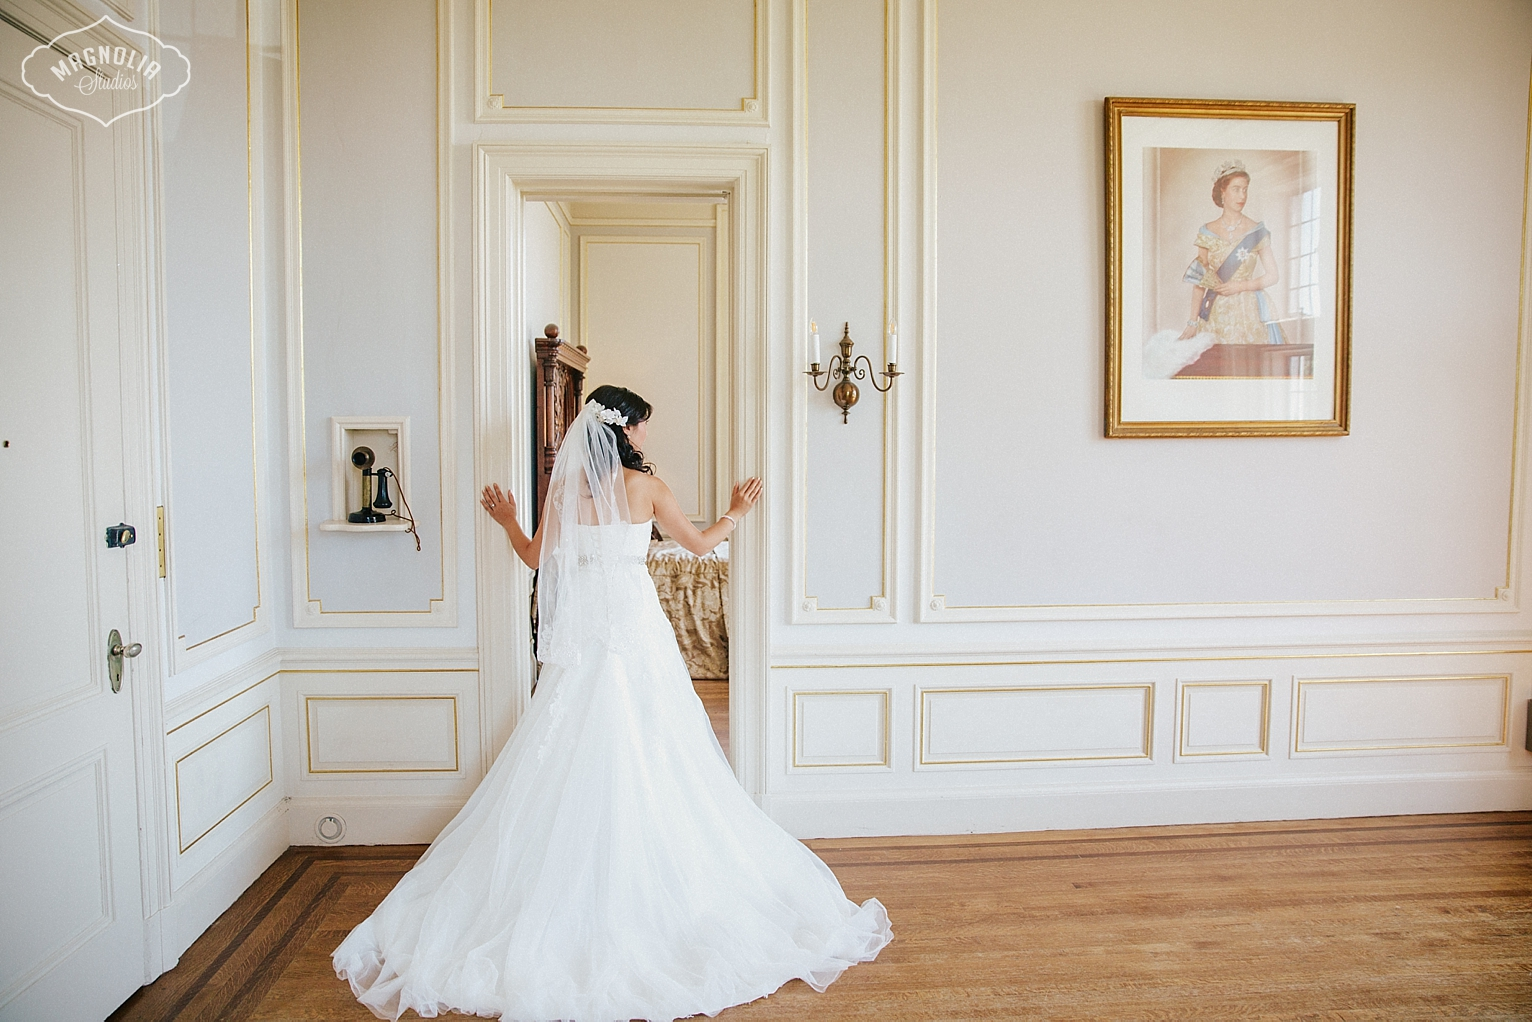 Casa Loma Bridal Suite